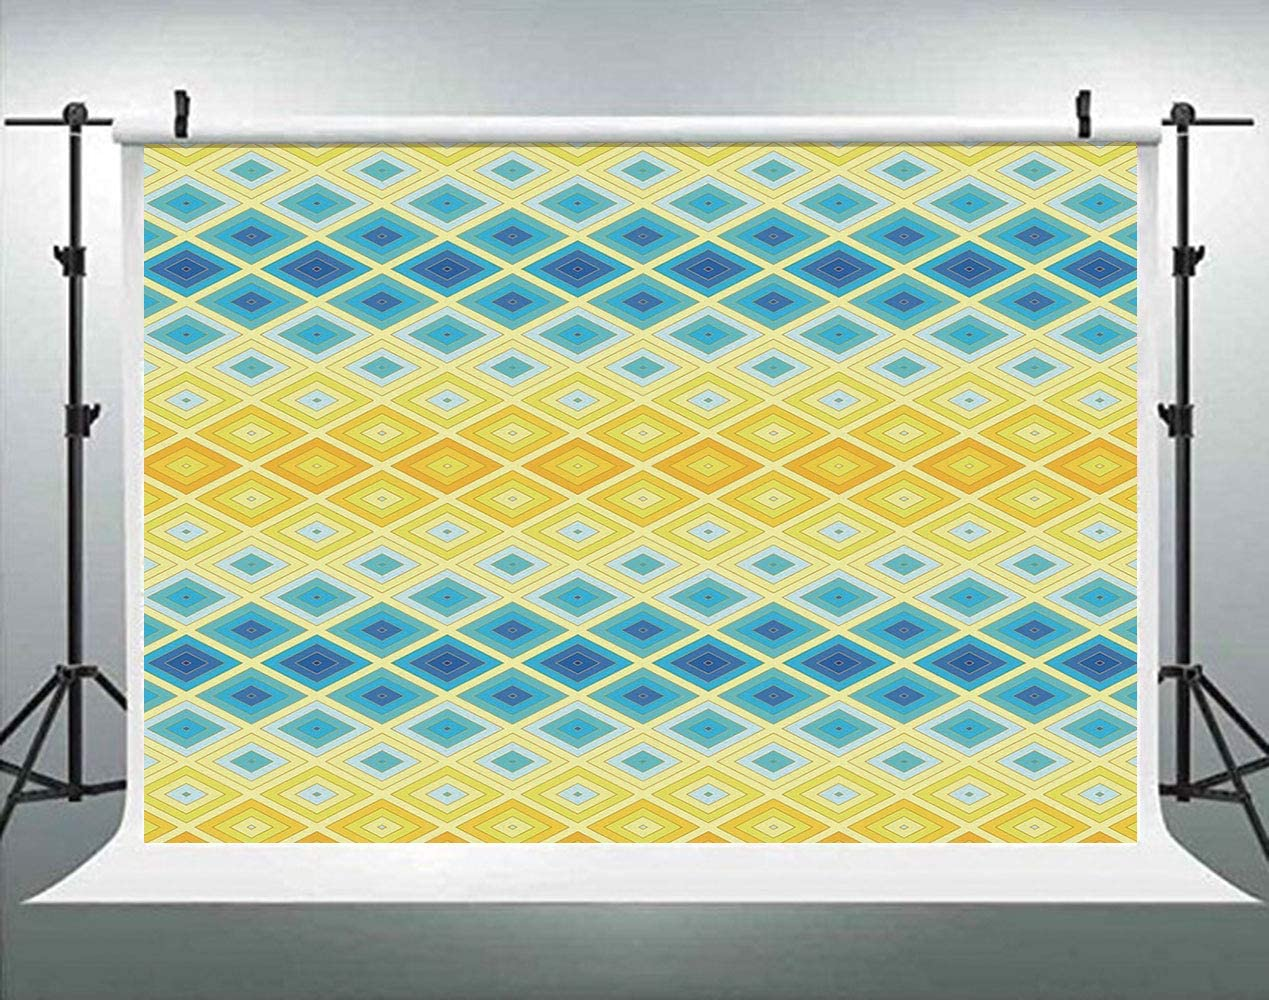 ALUONI 5x3ft Yellow and Blue,Horizontal Motifs Zigzag Lines Pattern Ombre Inspired Backdrop for Photography Photo Background for Family Party Pictures Customized Photo Booth Studio Props AM034672